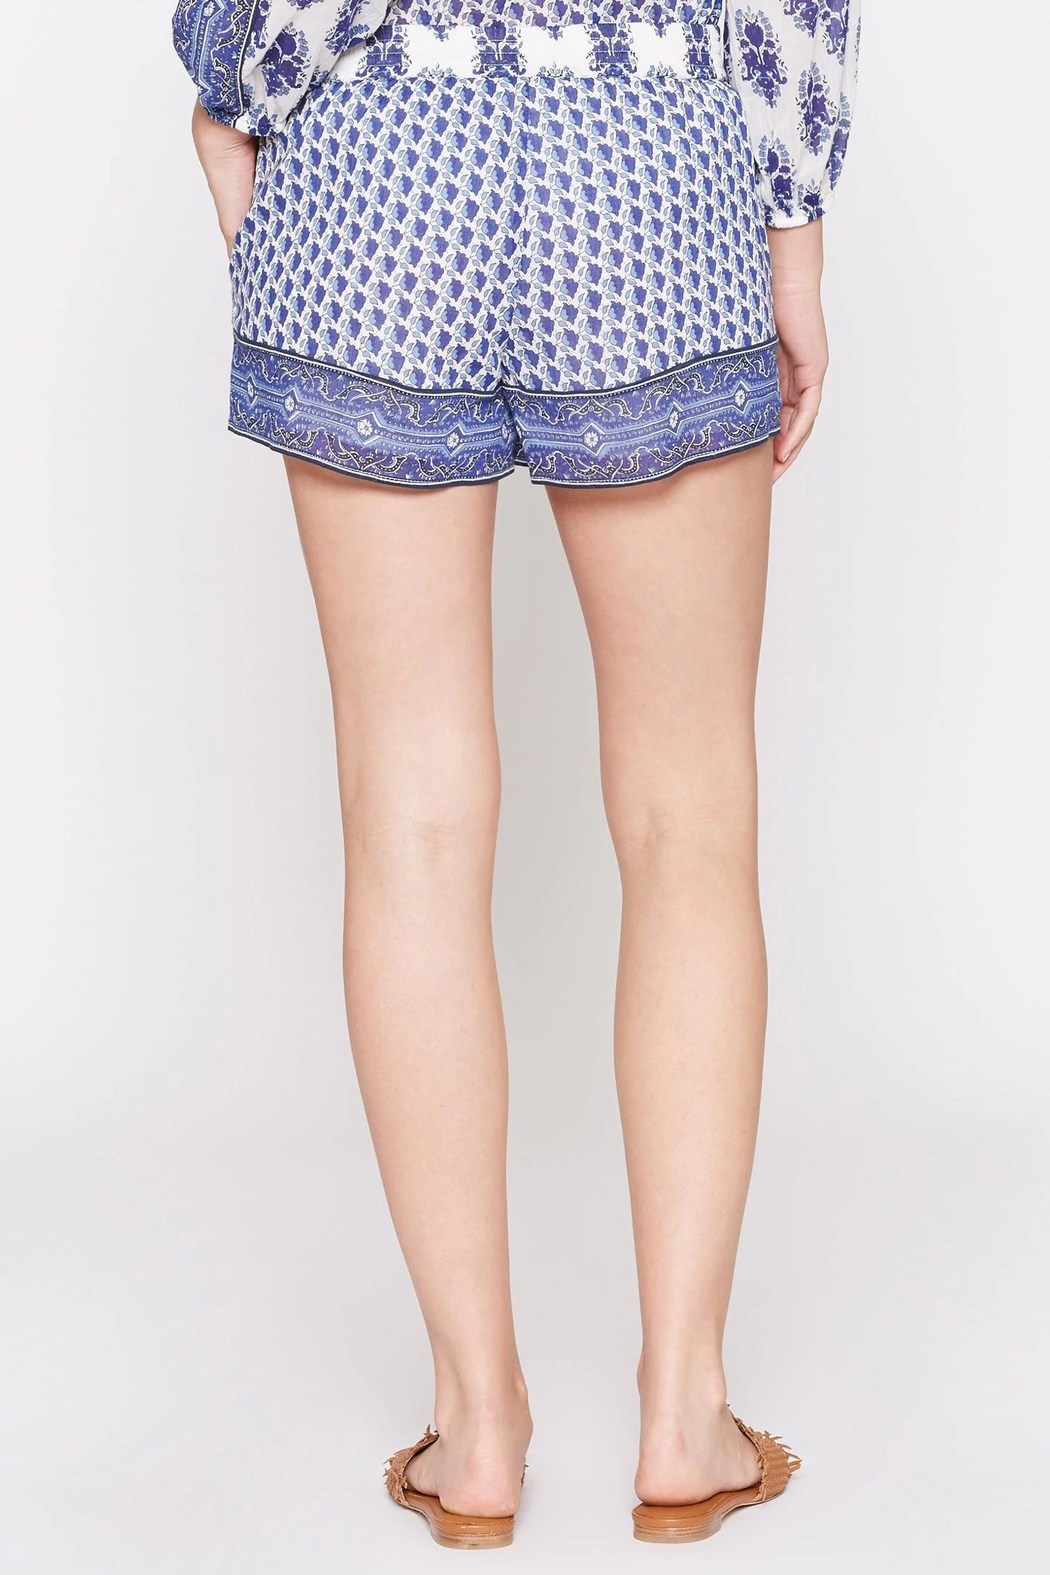 Soft Joie Beatra Printed Shorts - Front Full Image